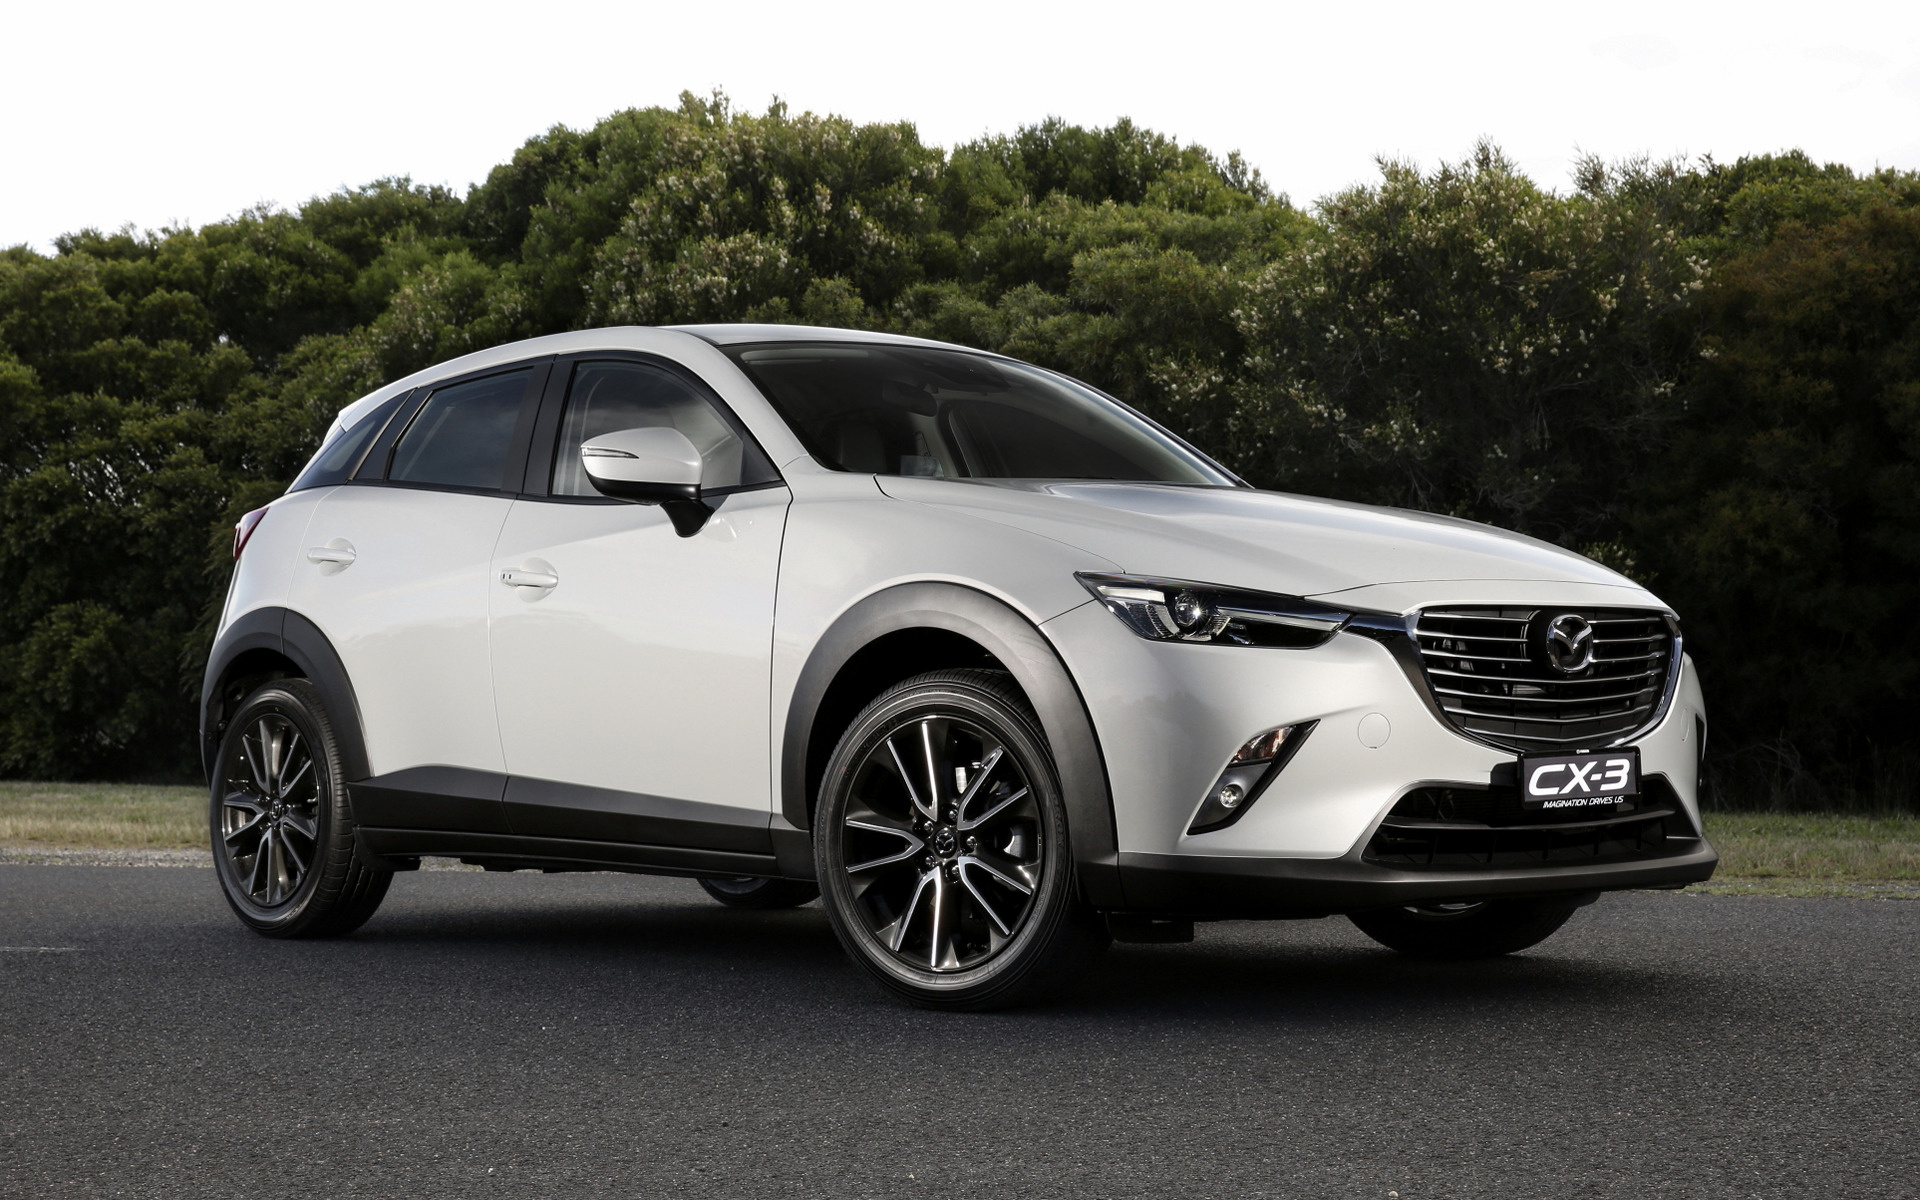 2015 Mazda Cx 3 Au Wallpapers And Hd Images Car Pixel